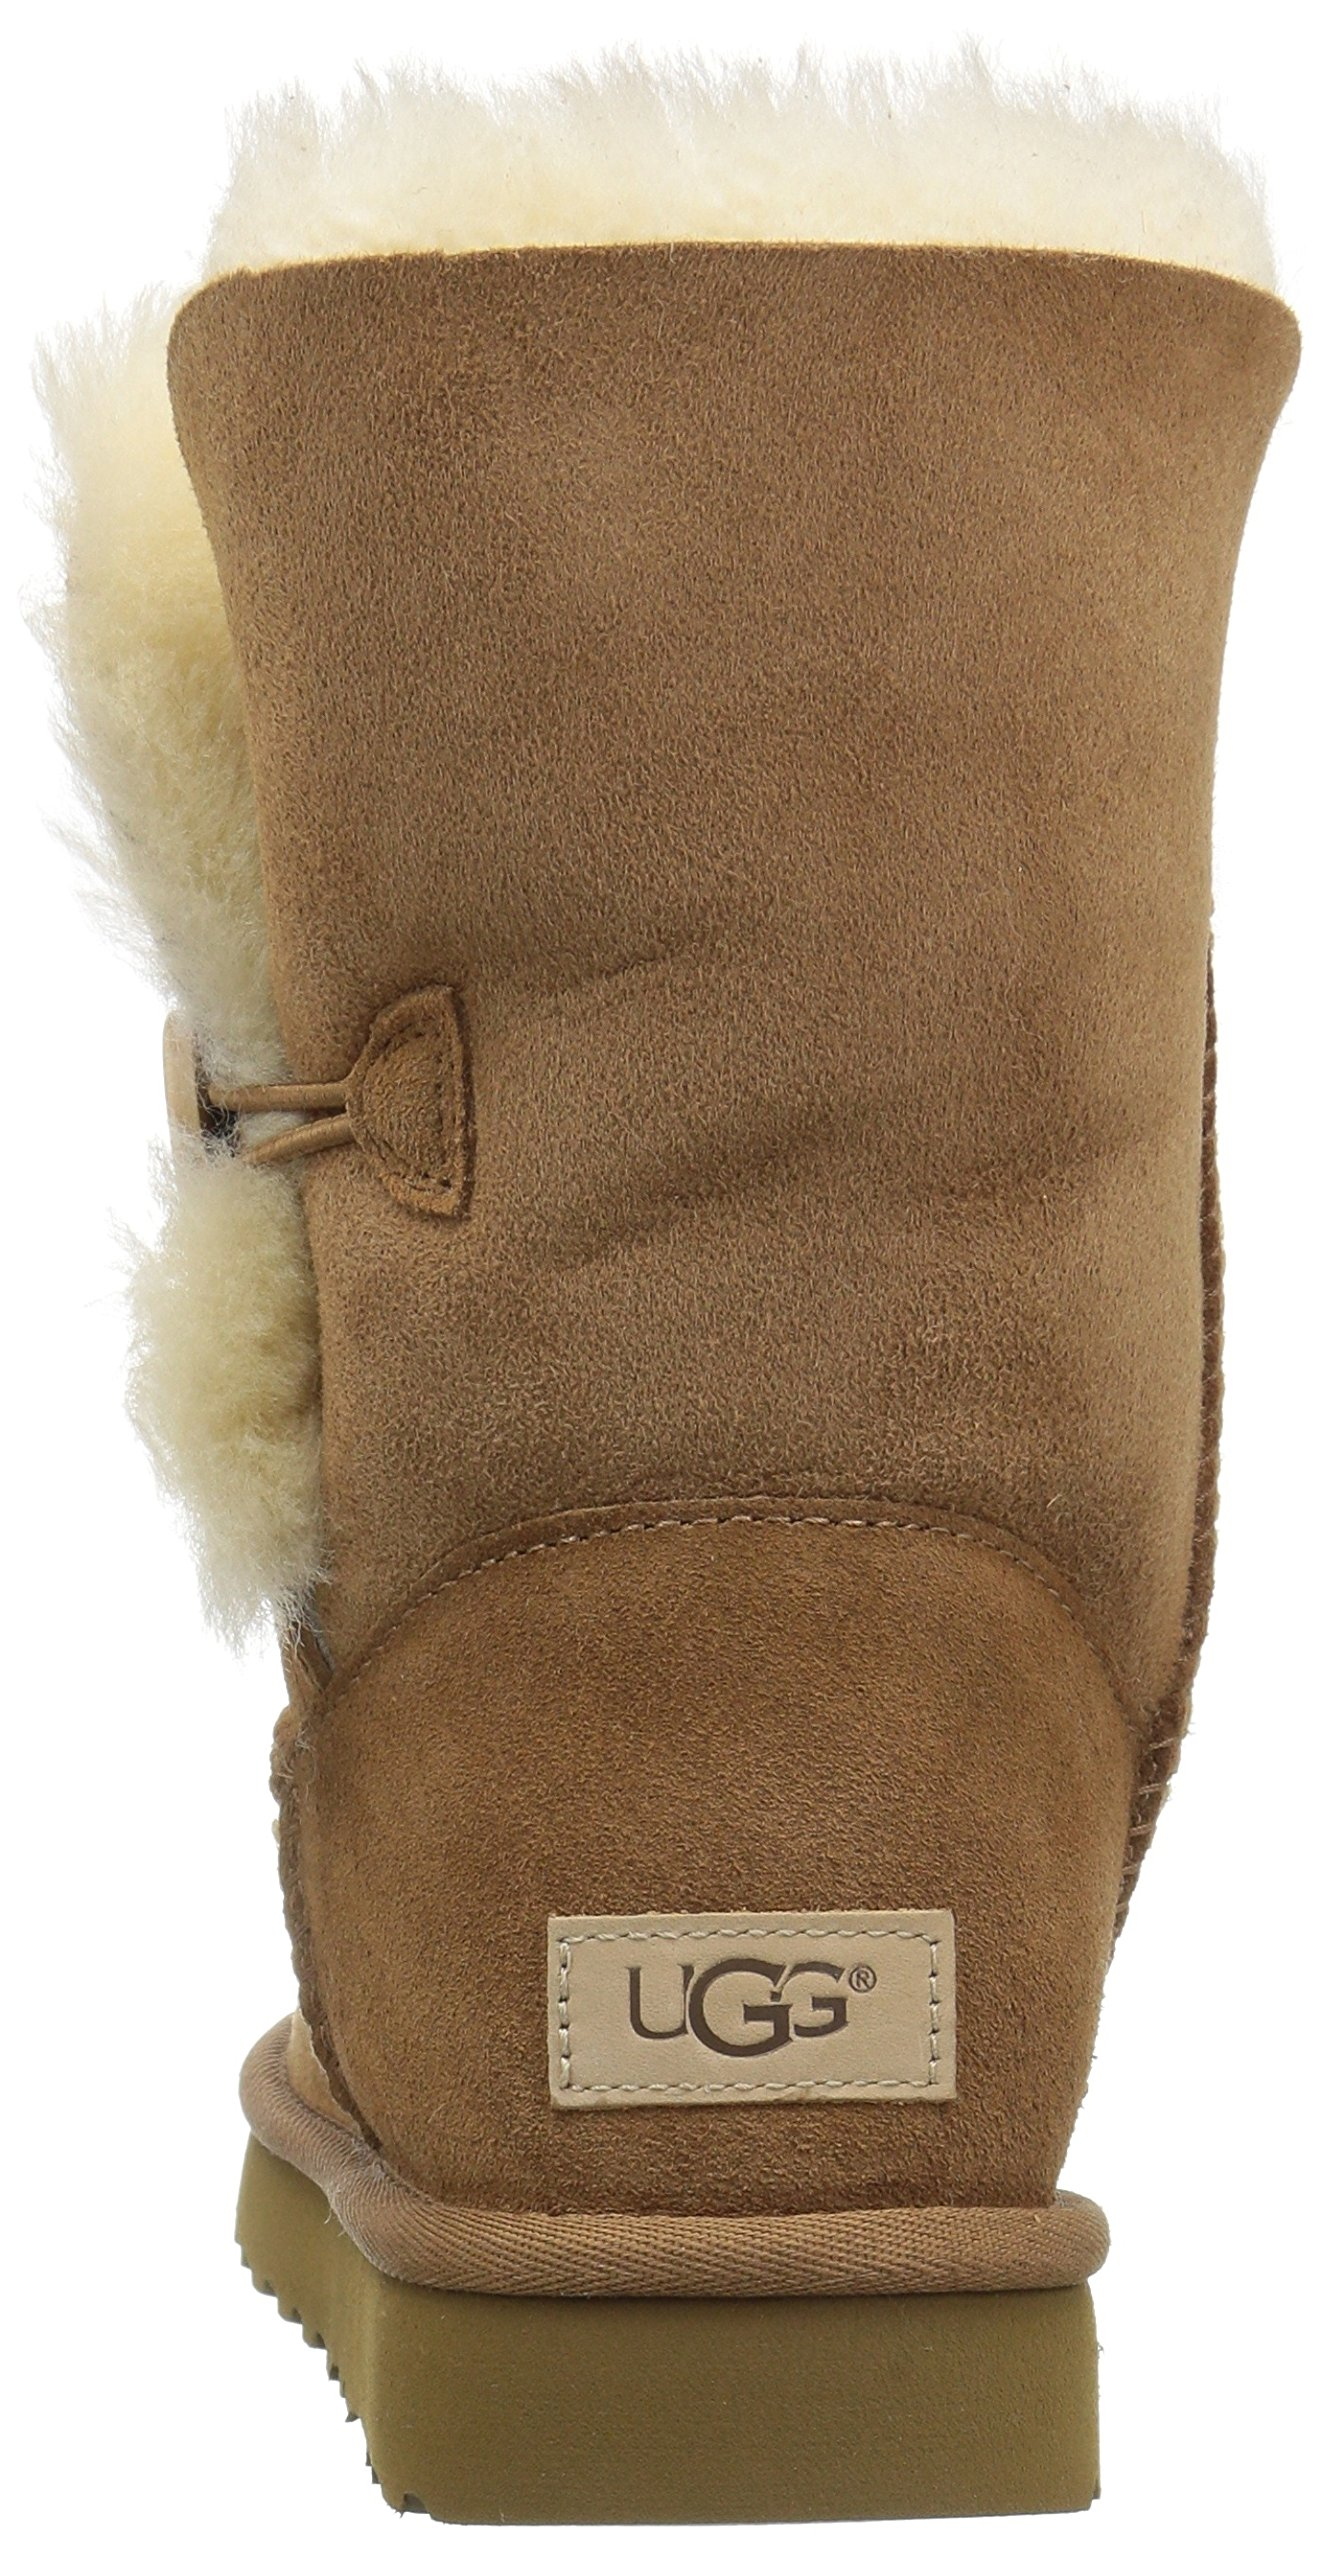 UGG Women's Bailey Button II Winter Boot, Chestnut, 8 B US by UGG (Image #2)